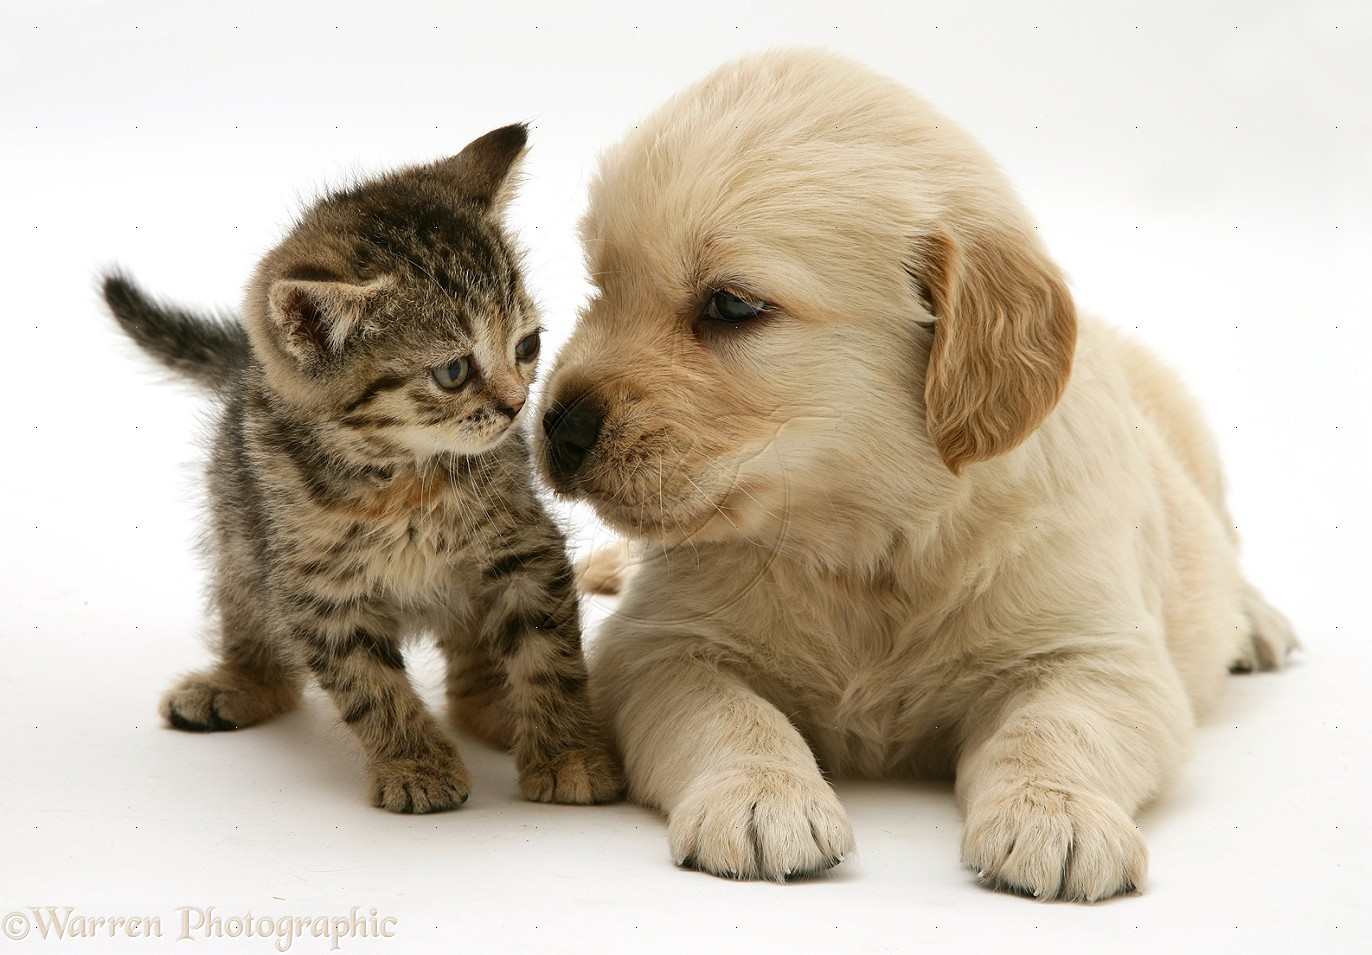 image from http://galleryhip.com/pictures-of-kittens-and-puppies-together.html